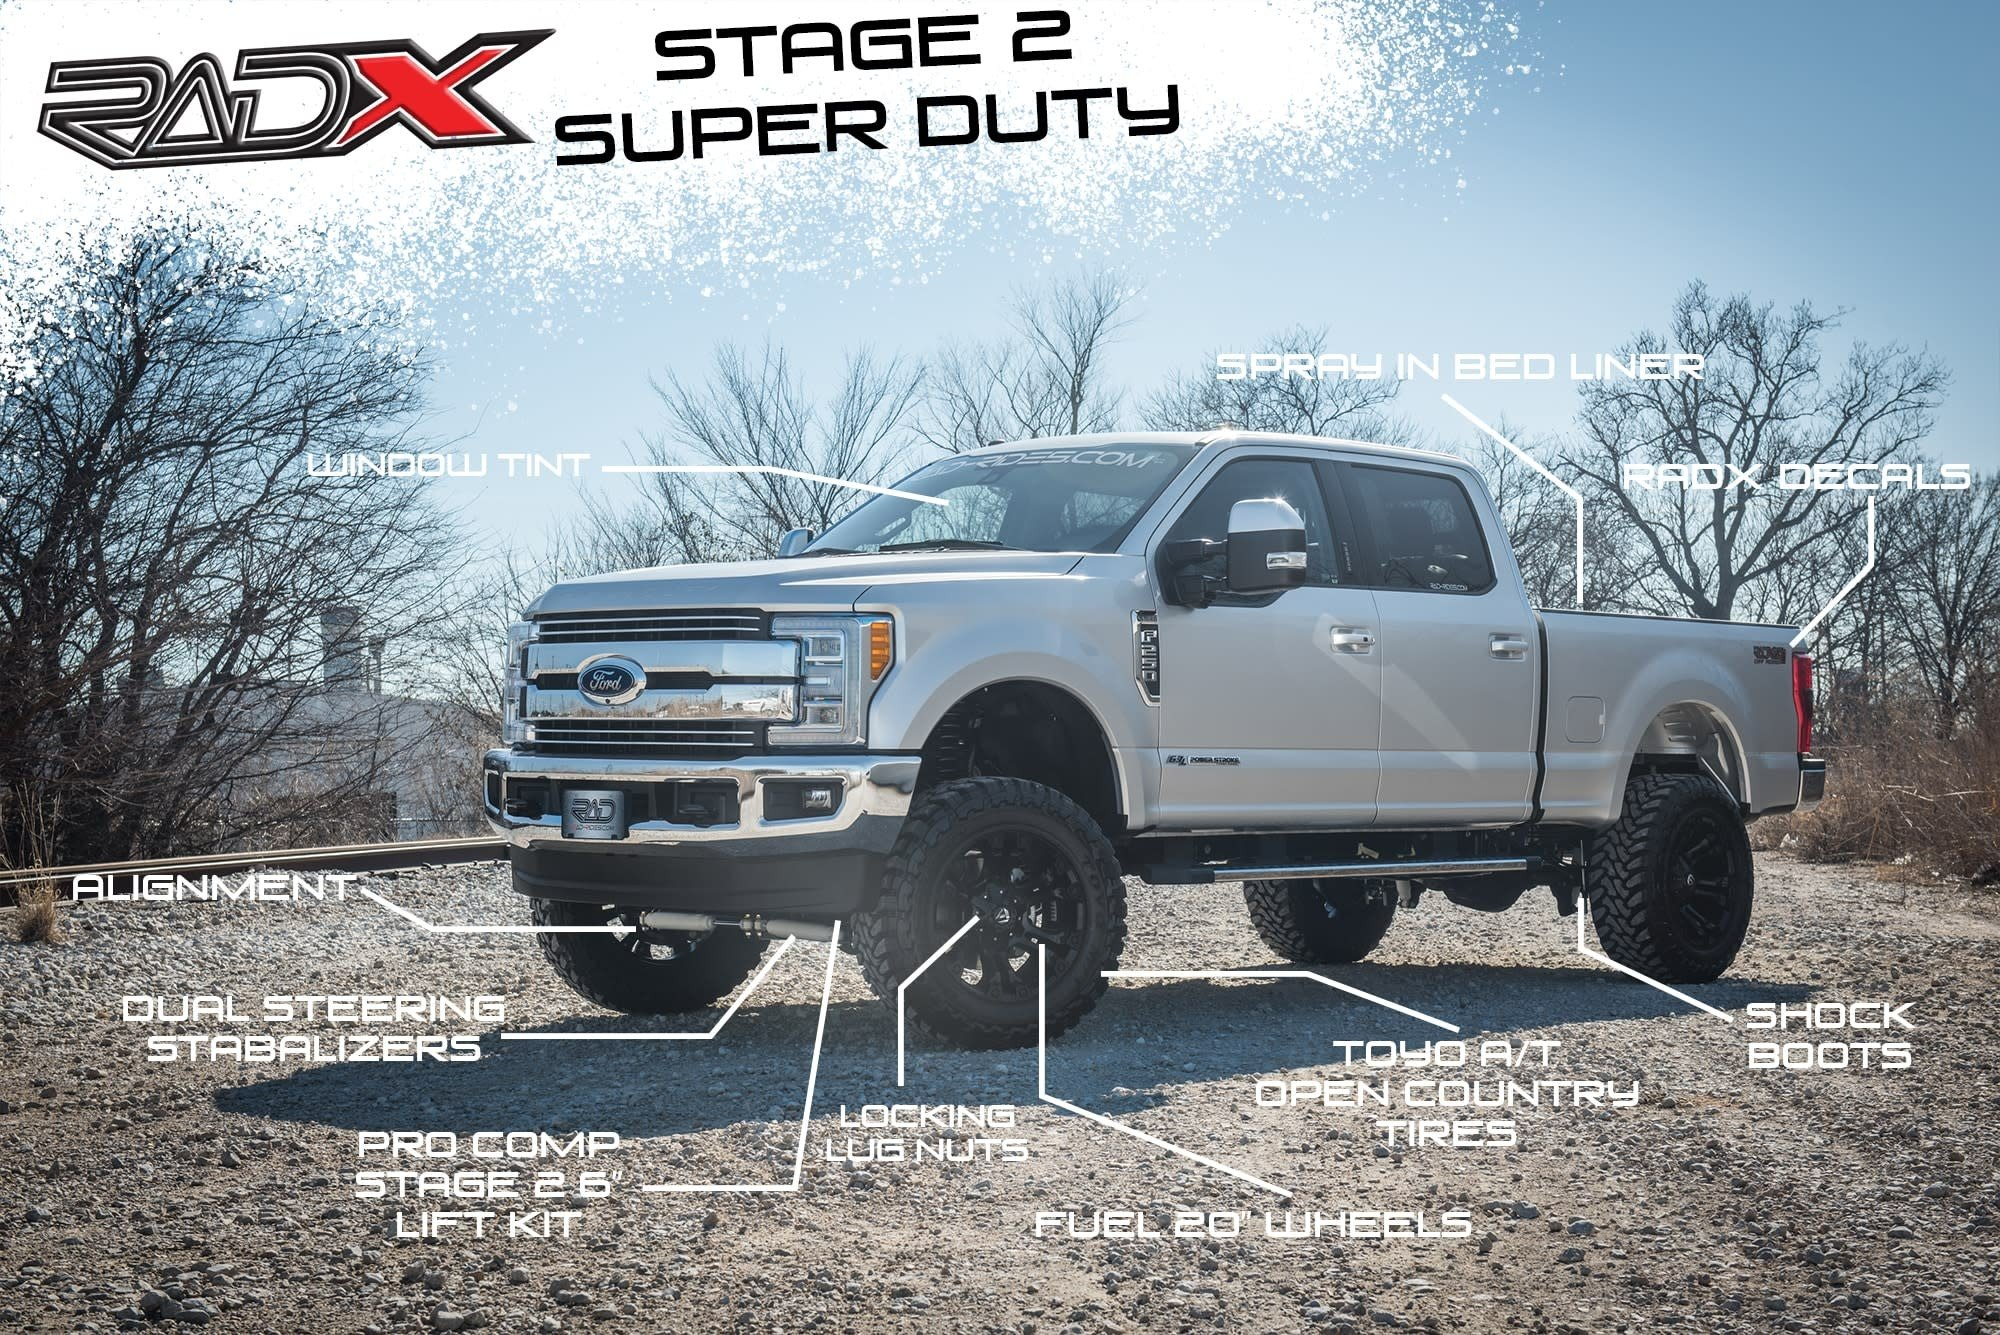 RAD Rides RADX Stage 2 Super Duty Lift Kit Package - Lifted Ford Trucks - New Lifted Ford Super Duty Trucks - Park Cities Ford of Dallas